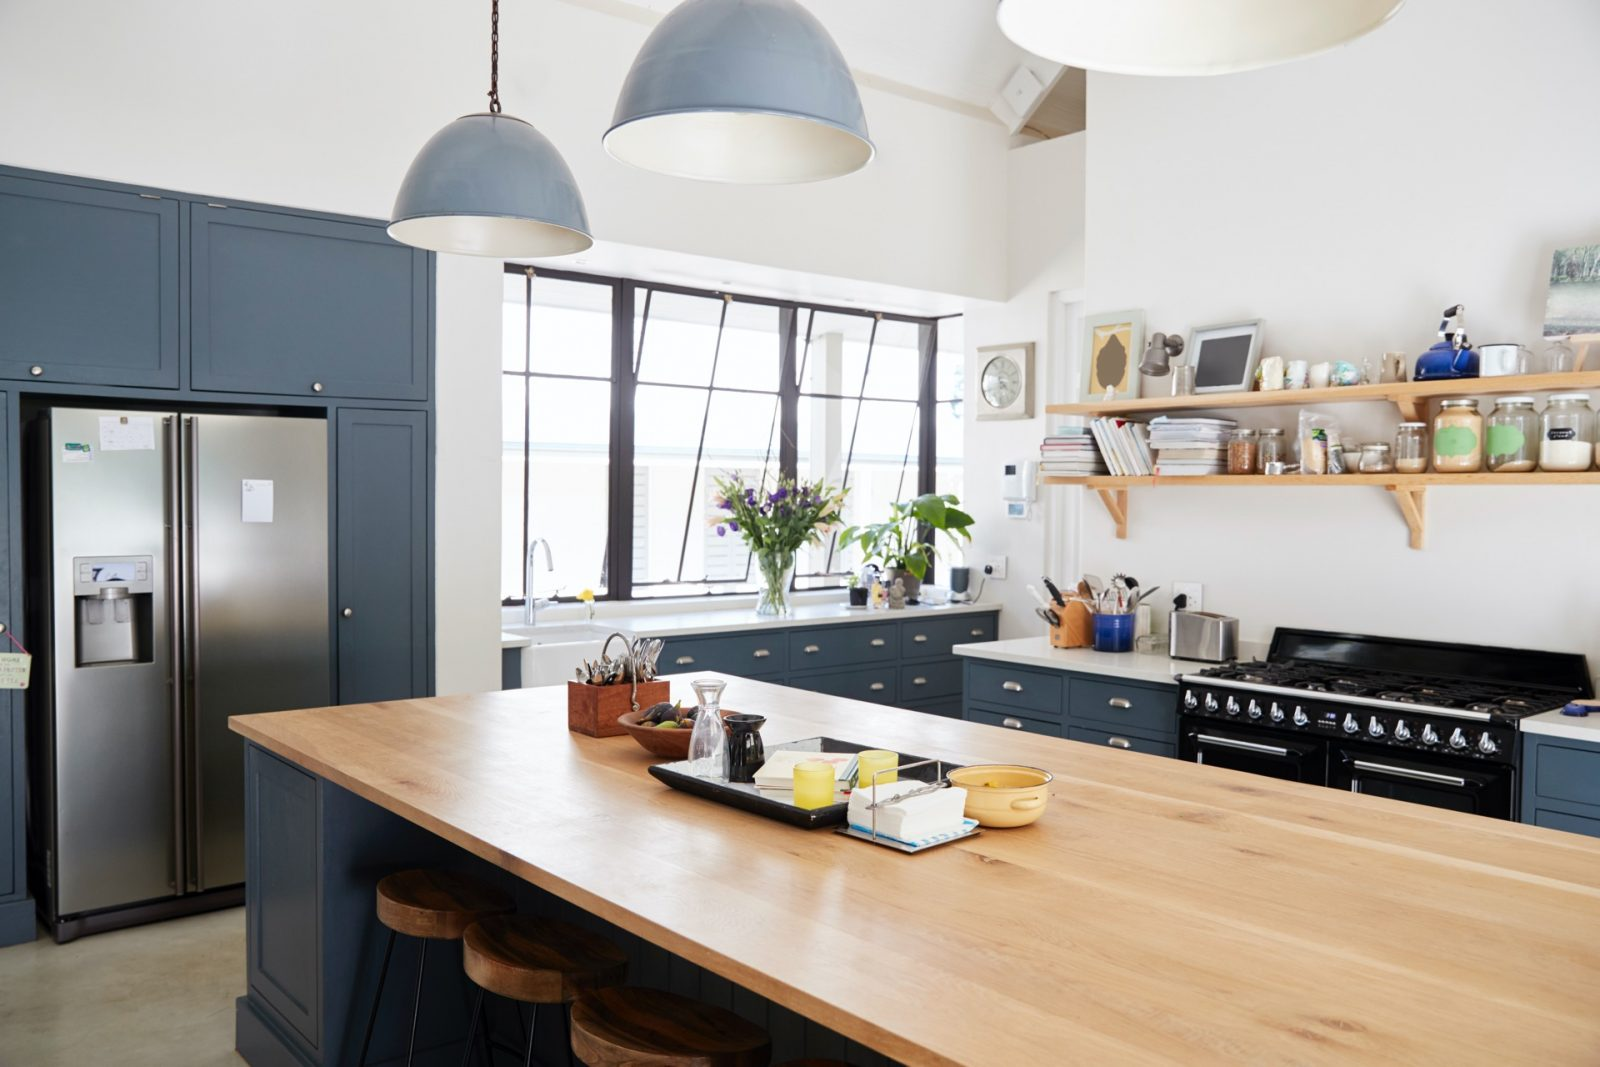 Kitchen island in a large family kitchen